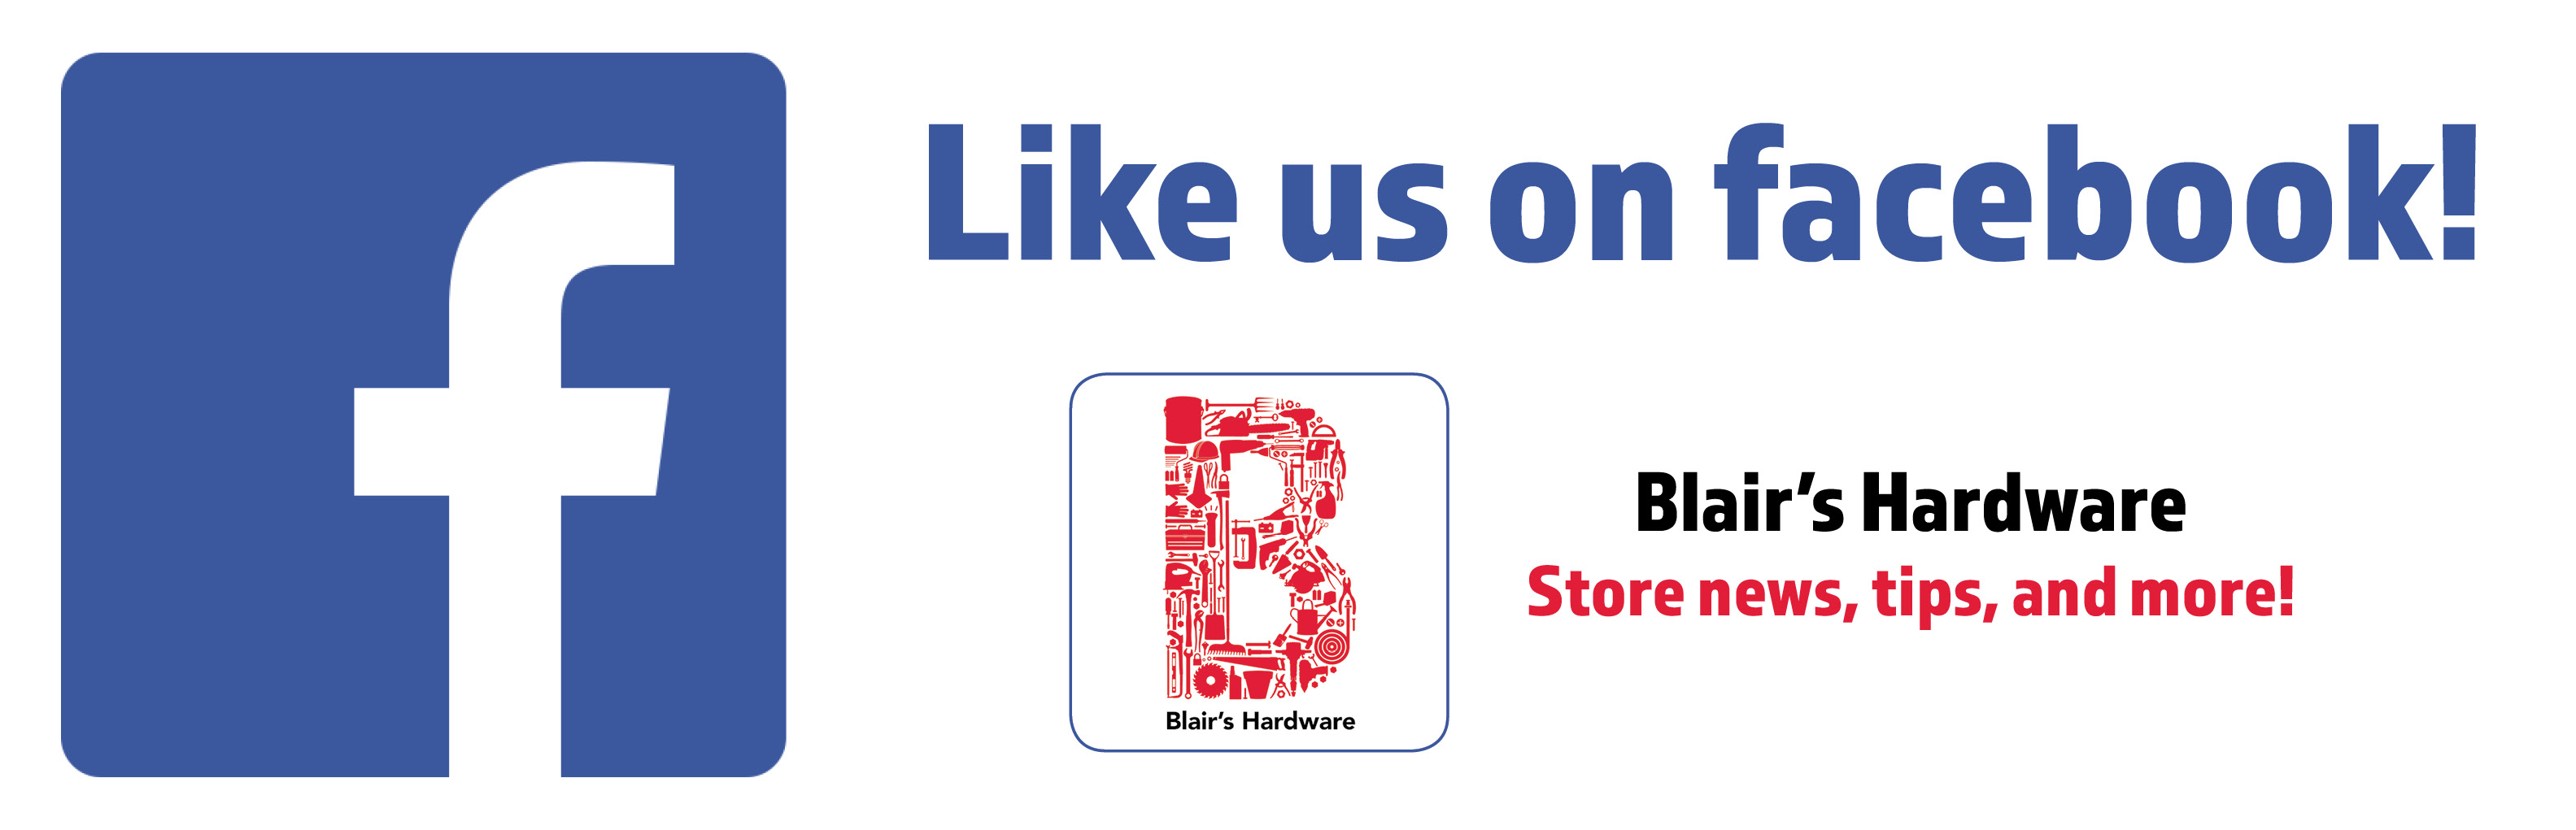 Like us on Facebook at Blair's Hardware for store news, tips, and more!